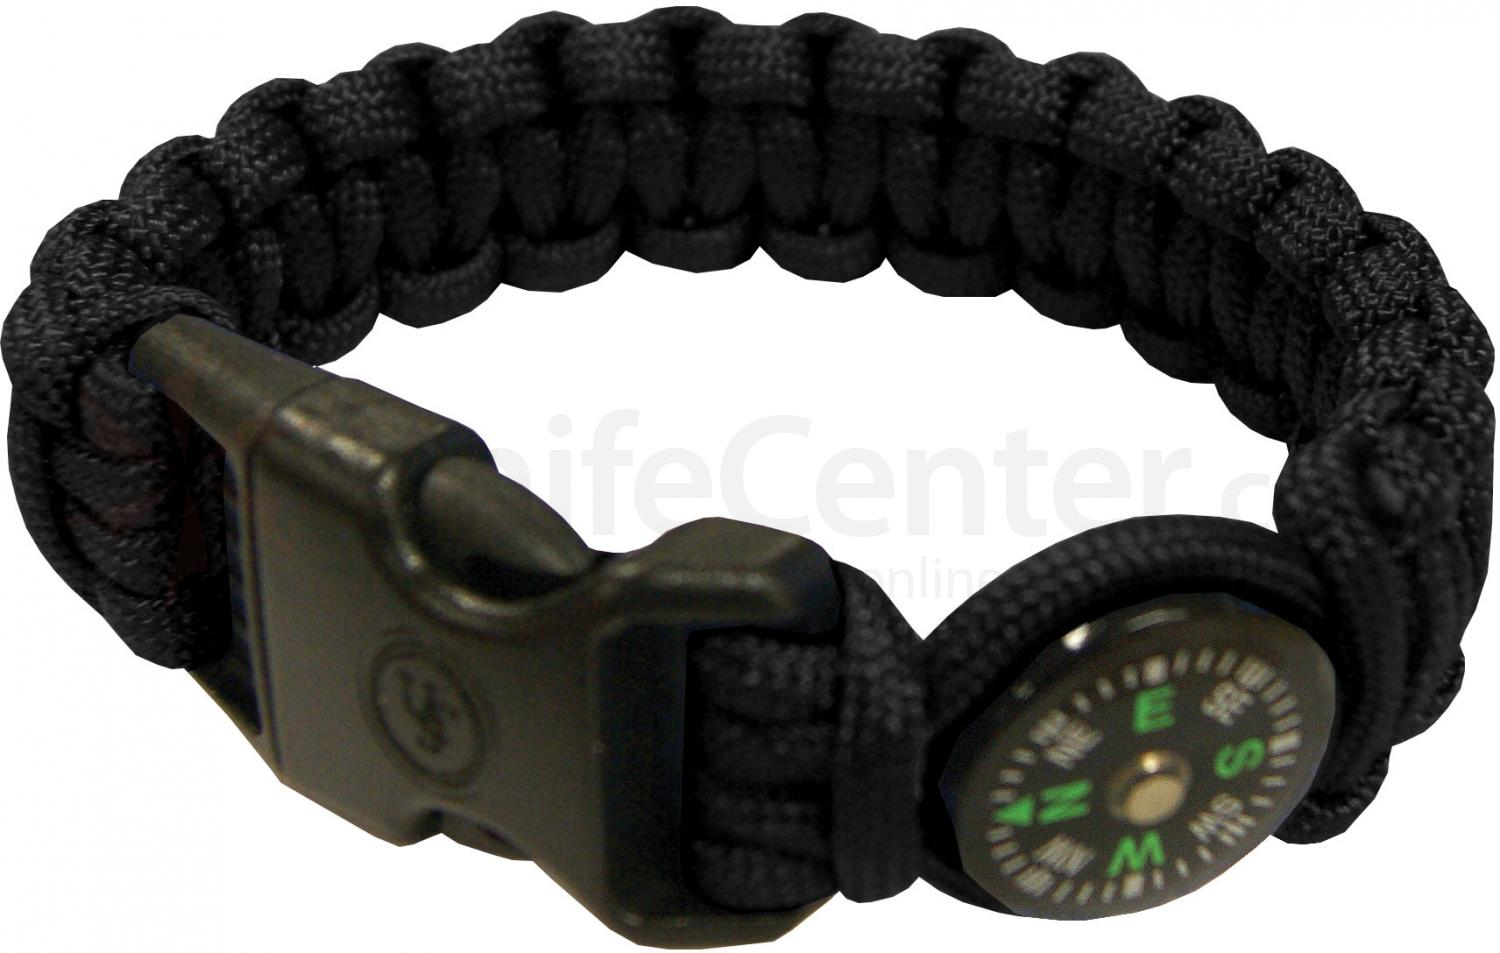 UST Ultimate Survival Paracord Survival Compass Bracelet, Black (20-295-345-E5)